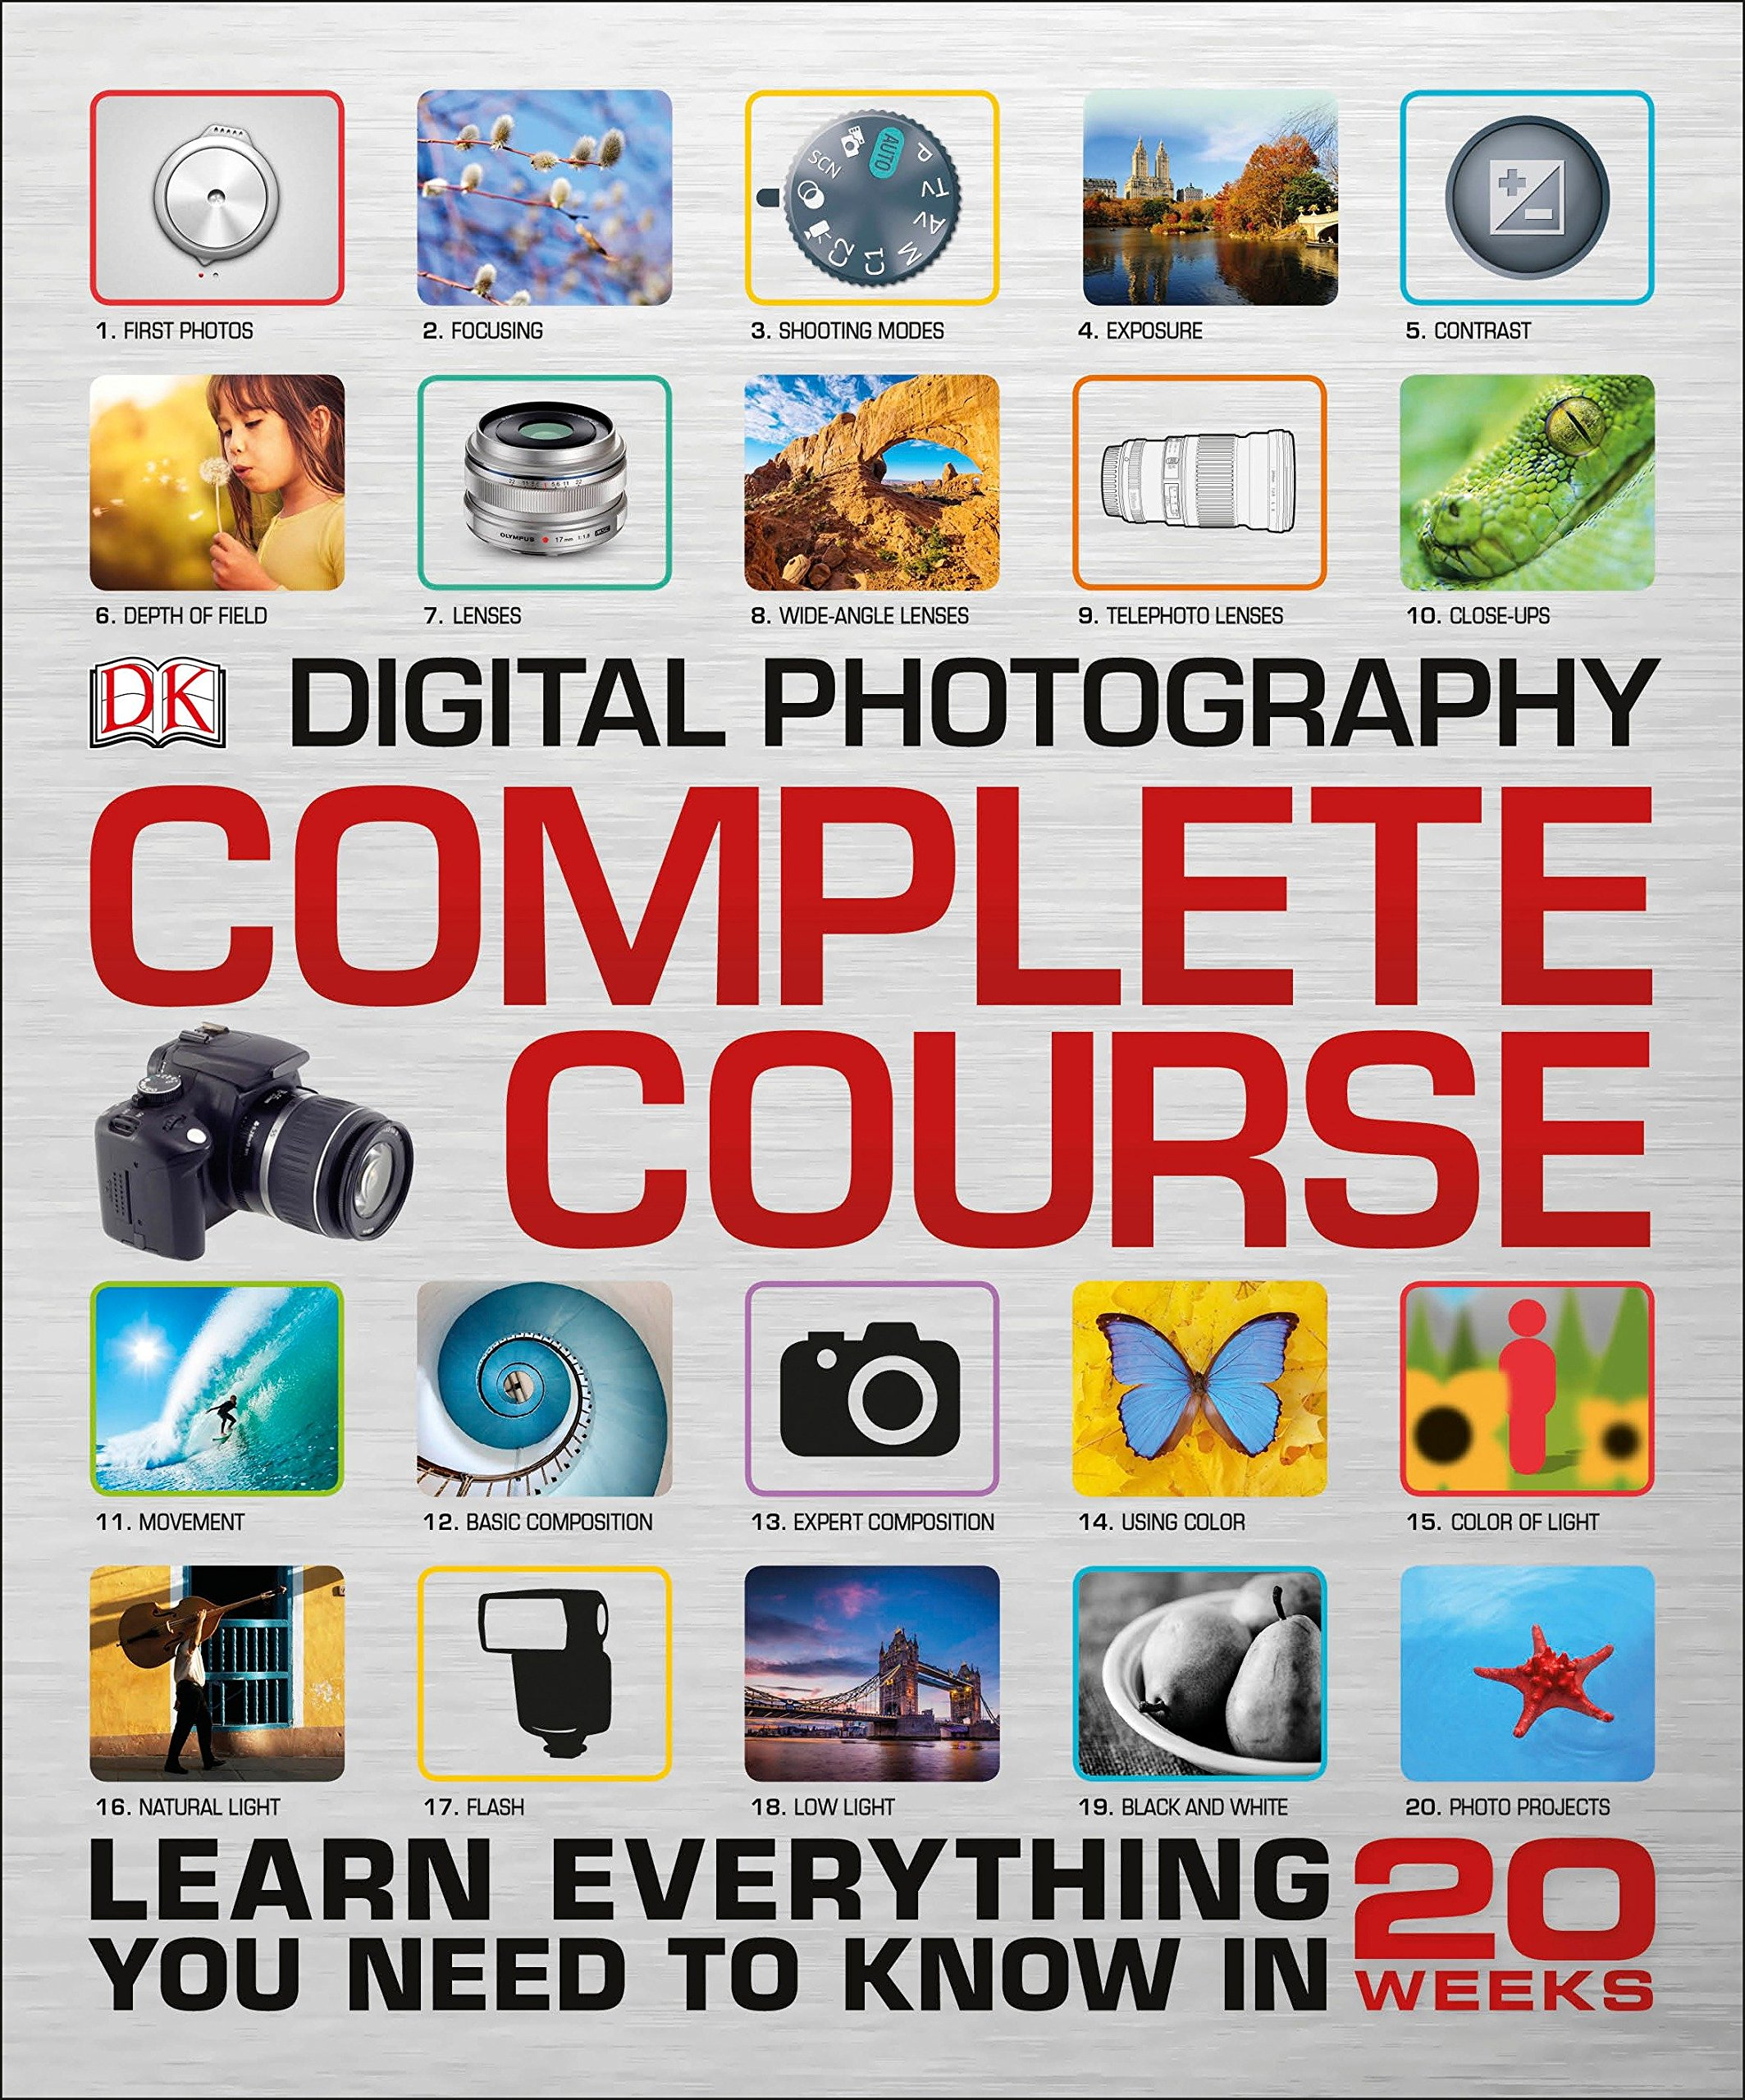 Digital Photography Complete Course: Learn Everything You Need to Know in 20 Weeks by DK Publishing Dorling Kindersley